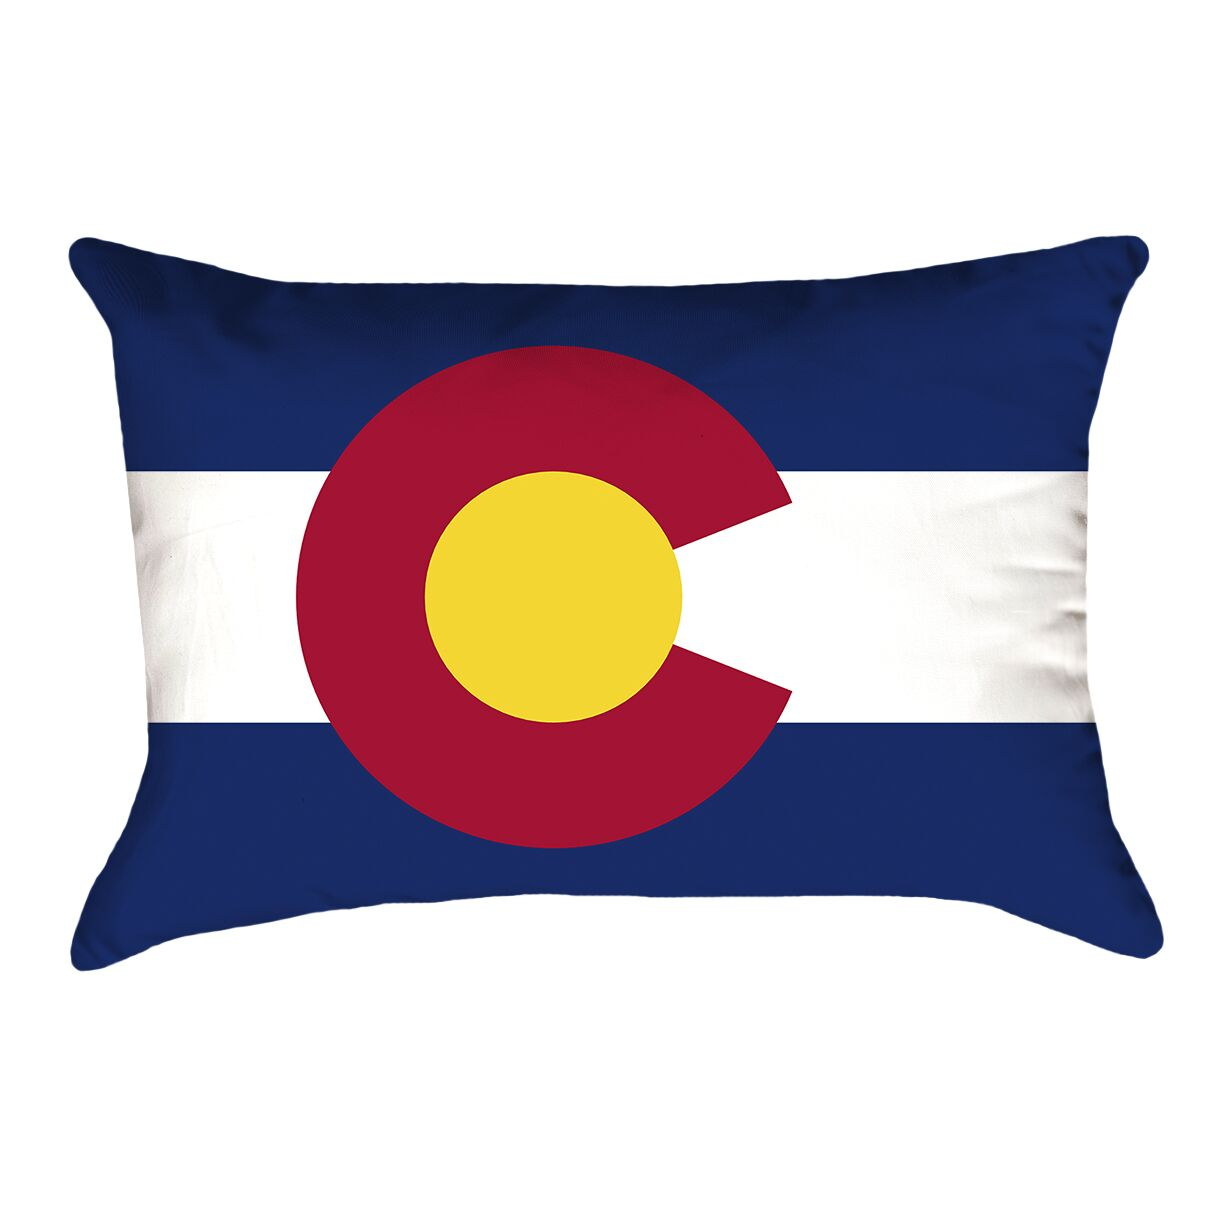 Centers Colorado Flag Lumbar Pillow Material/Product Type: Poly Twill Double Sided Print/Lumbar Pillow